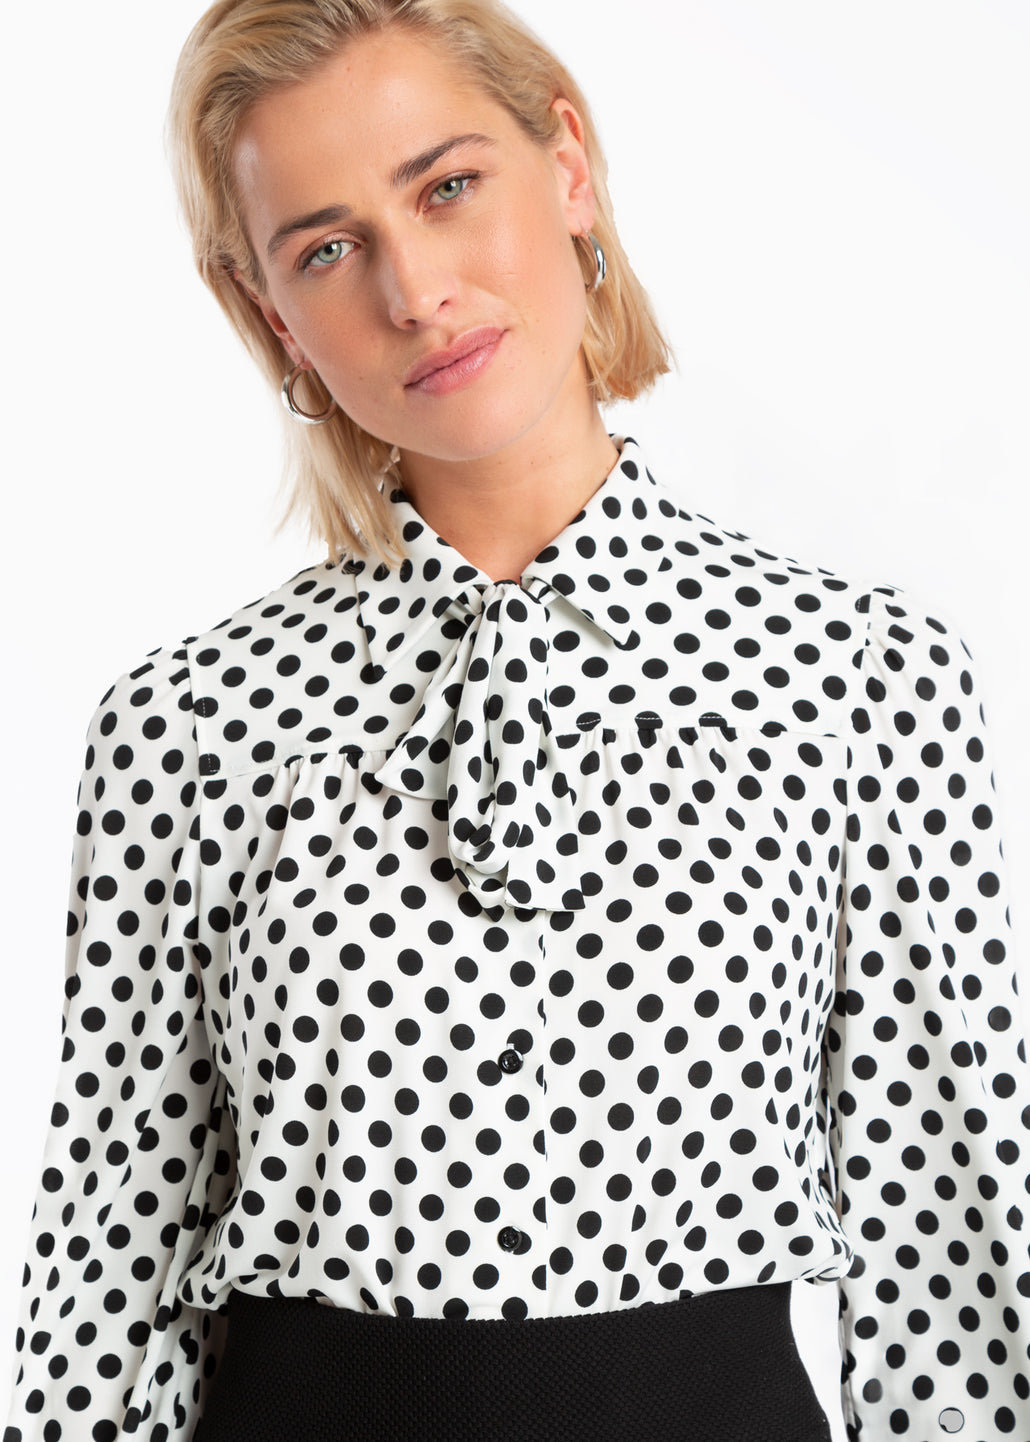 strikblouse met stippenprint